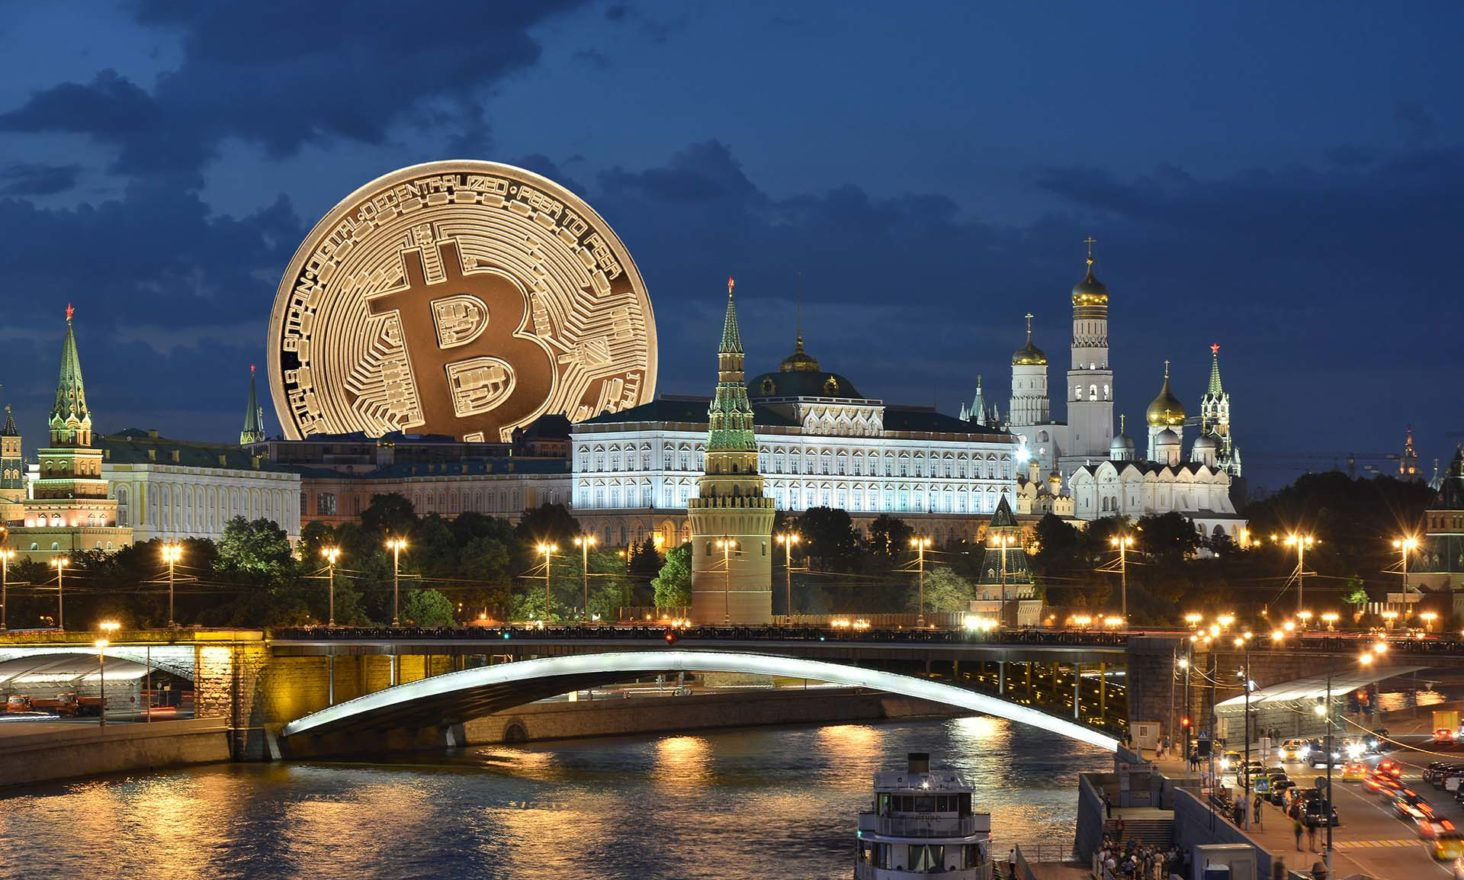 Russia's Blockchain Legislation Could Be Ready in a Few Months